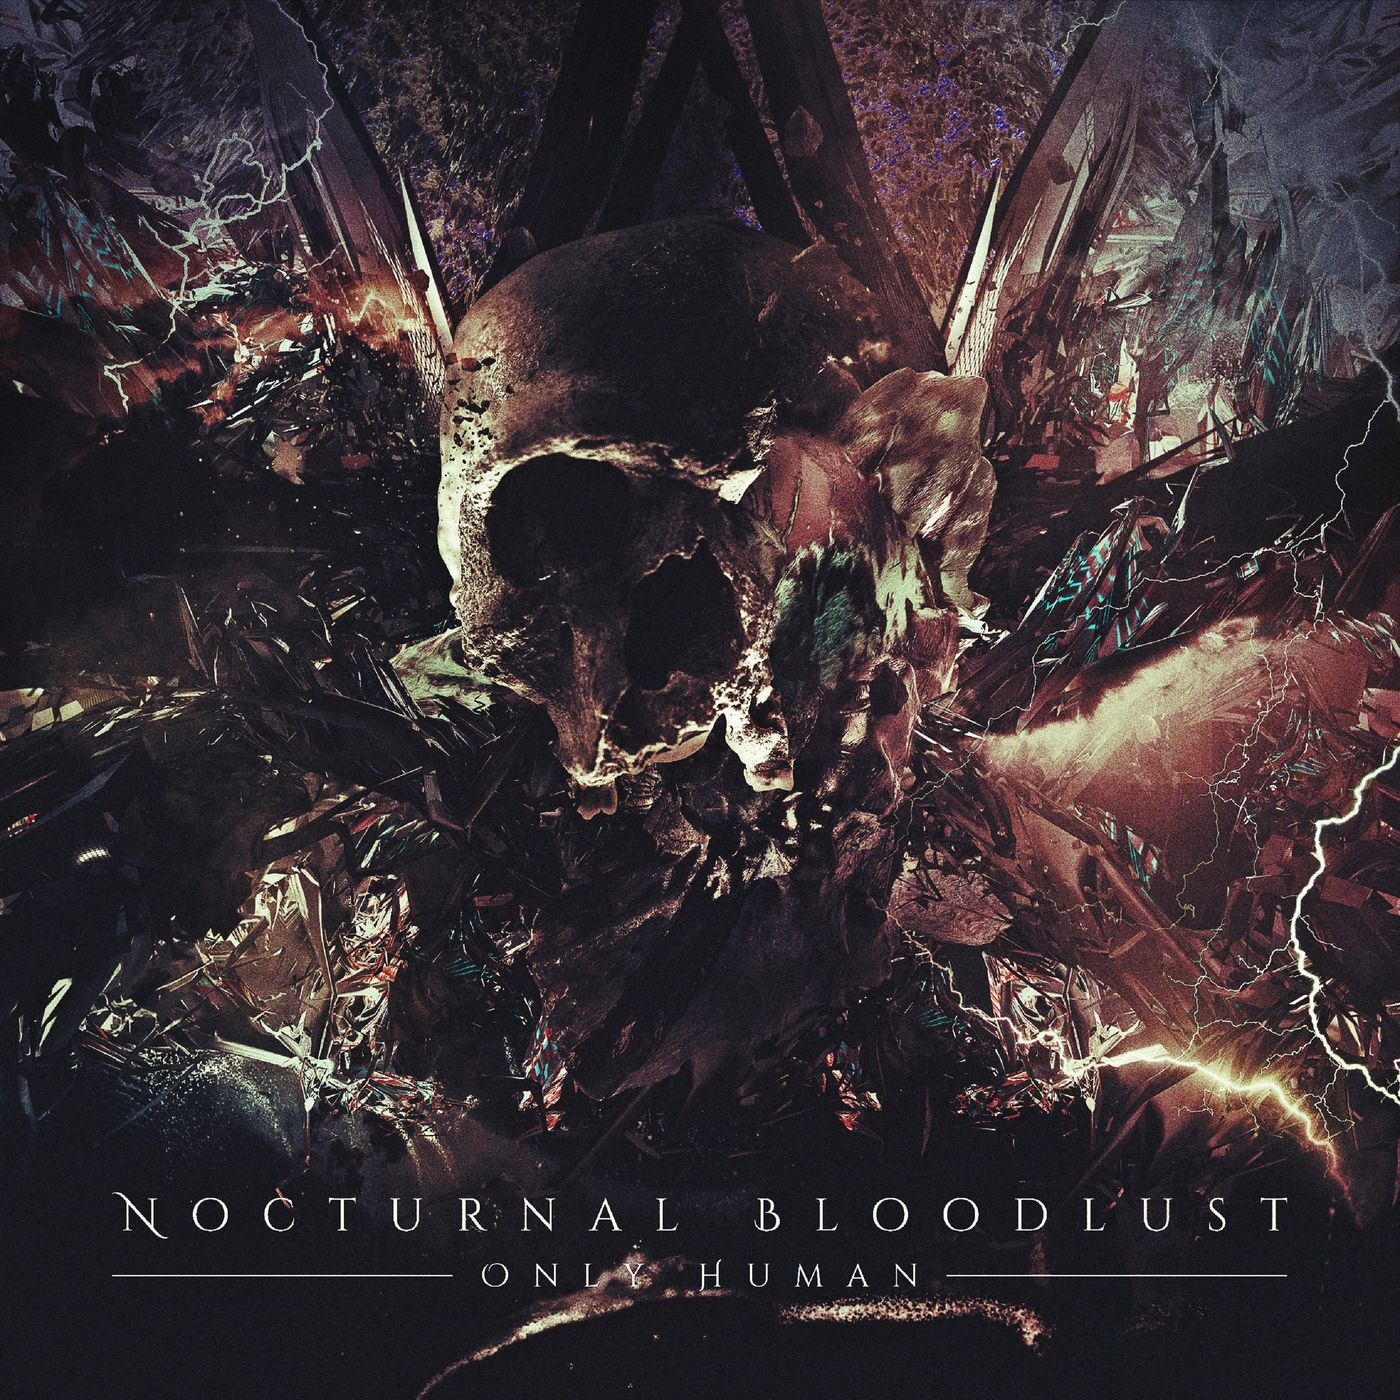 NOCTURNAL BLOODLUST - ONLY HUMAN [single] (2020)